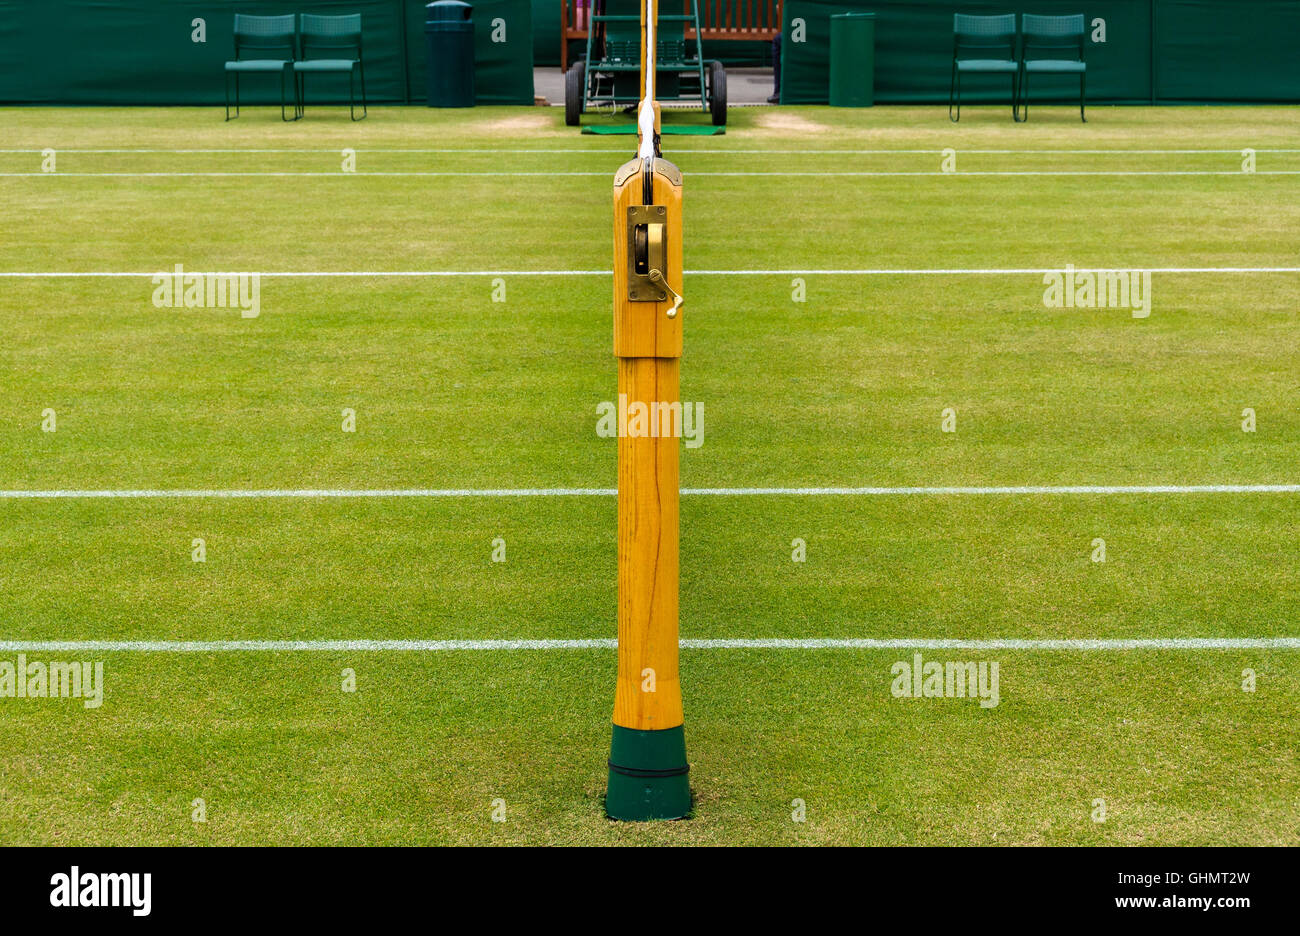 Detail of a lawn tennis court - Stock Image